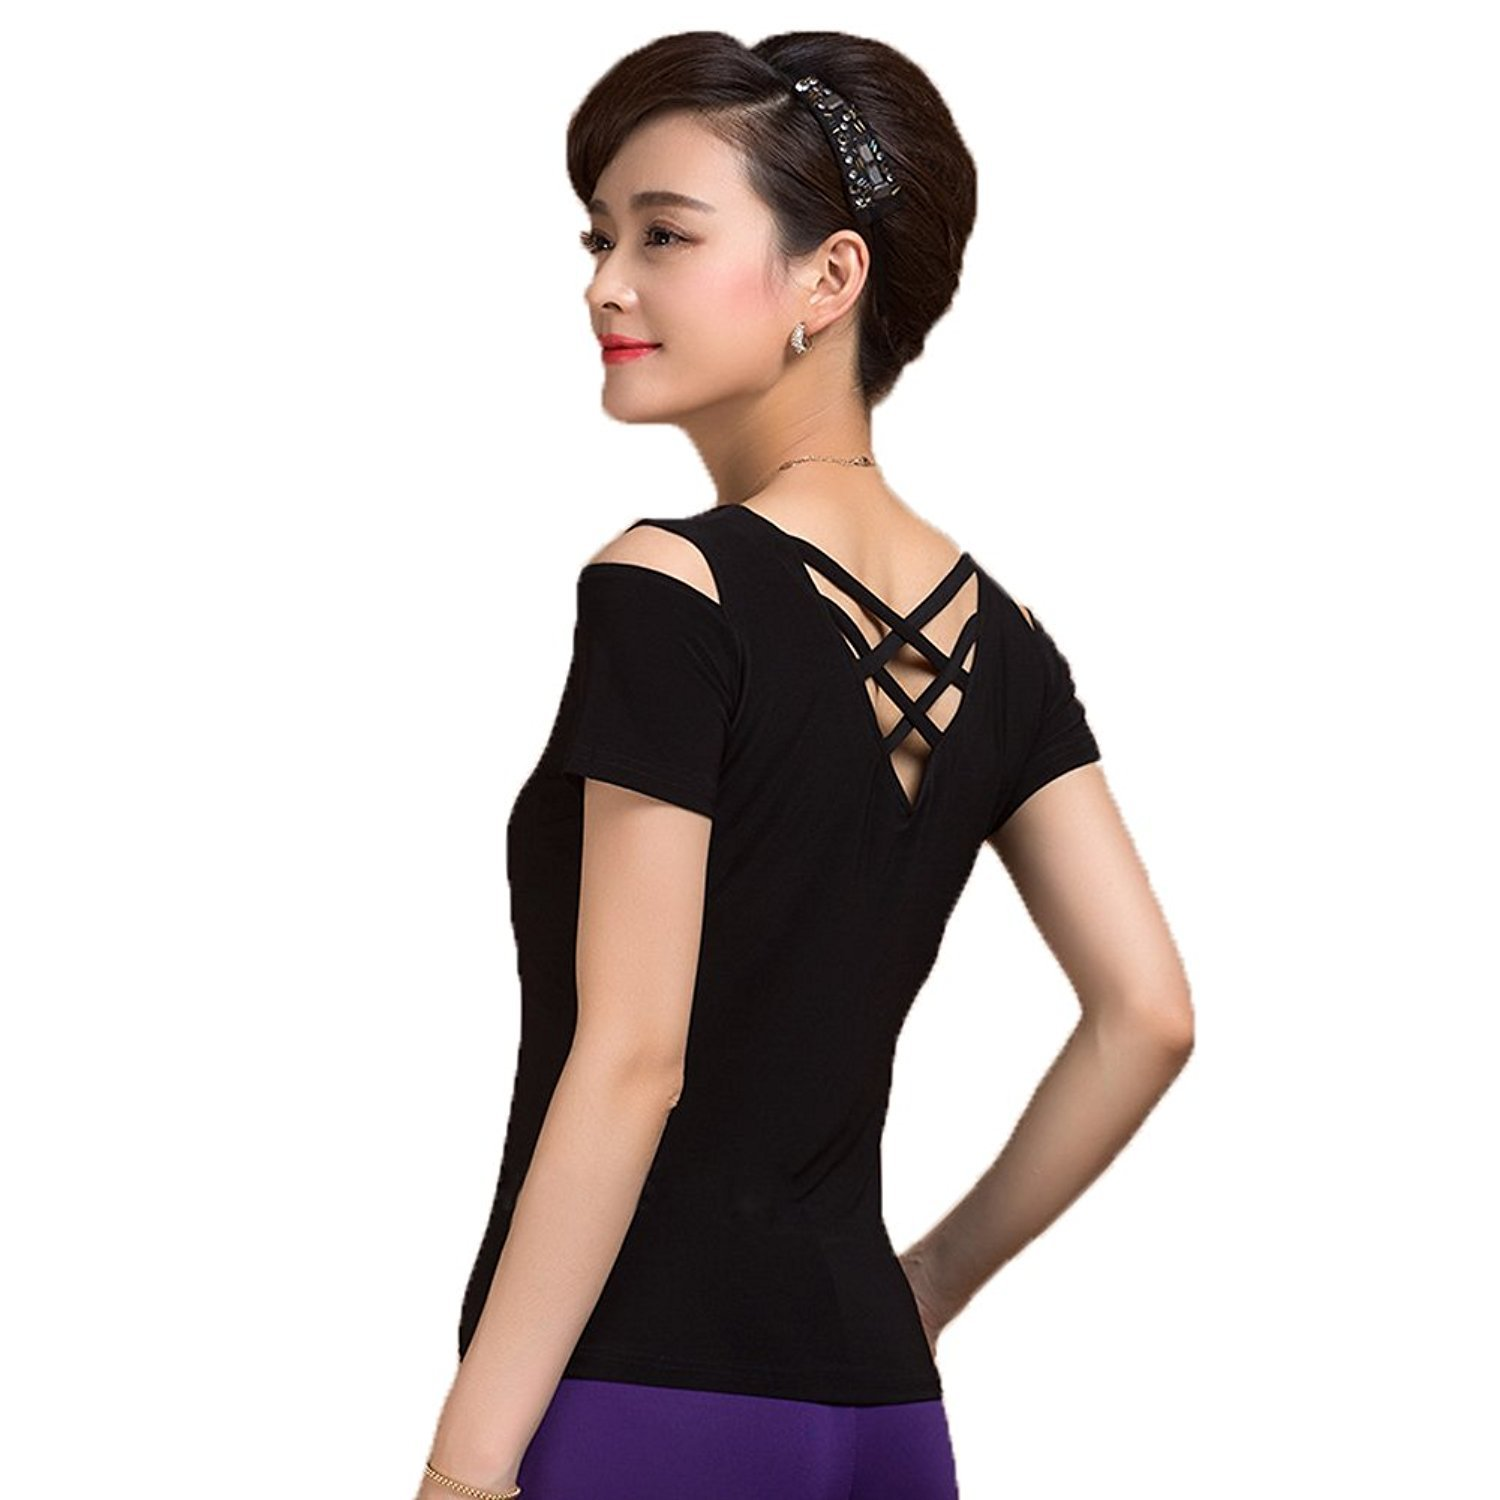 G1041 Latin Ballroom Modern Dance Professional bat Sleeve and Tied Design Practice Tops Includes a Simple Belt